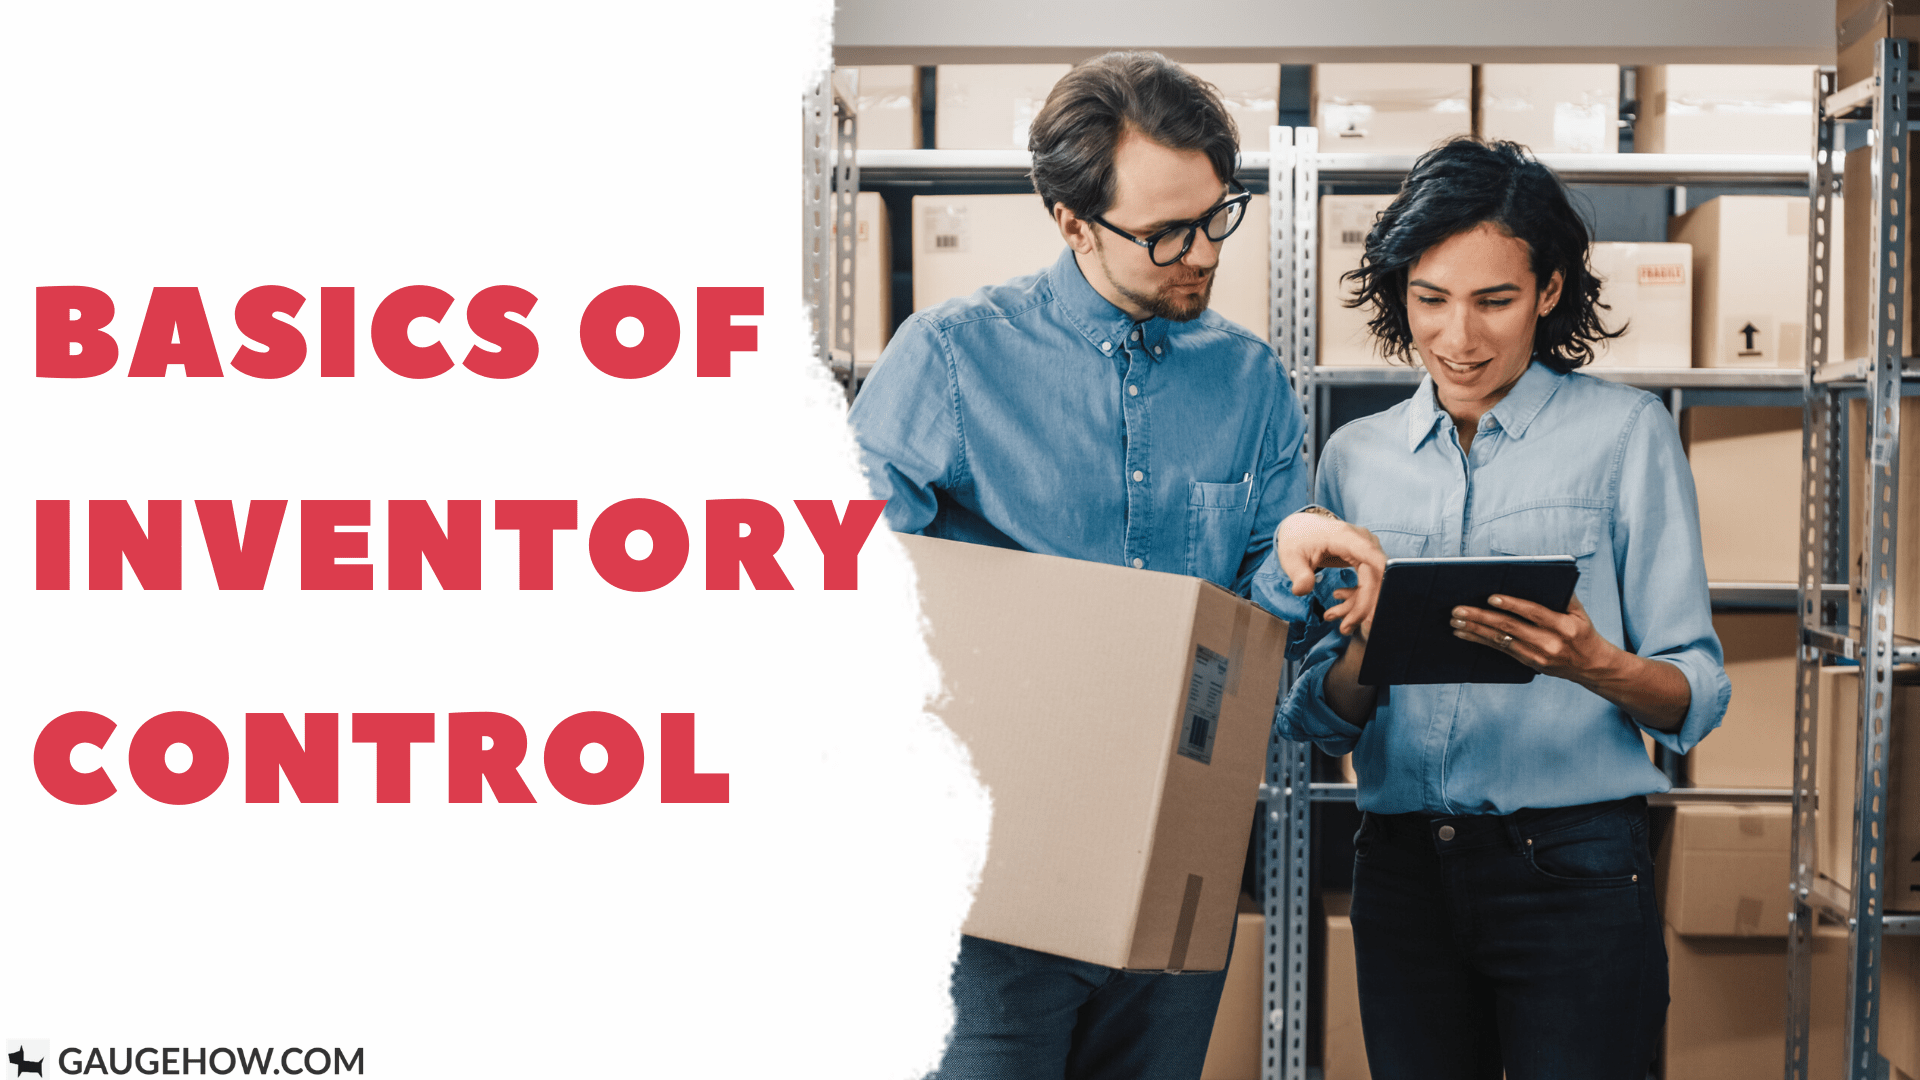 basics of inventory control course